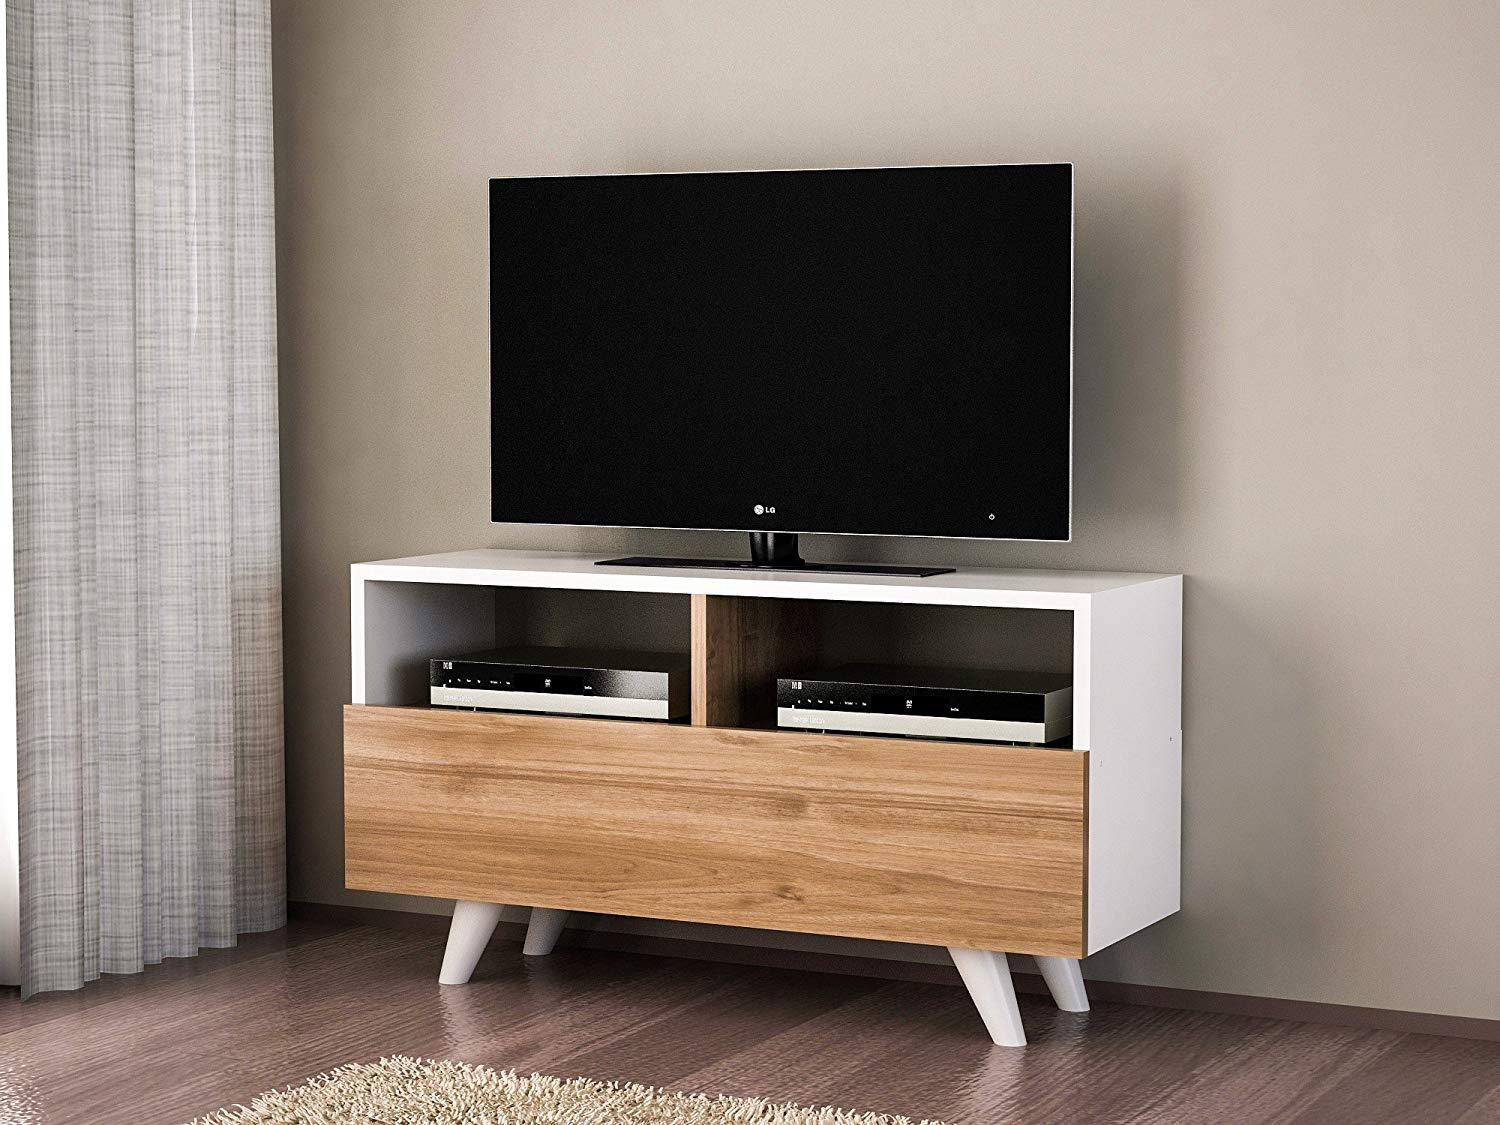 Get Quotations Lamodahome Tv Stand Unit White Wooden Coloured Stylish Design Simple Parted Storage Multi